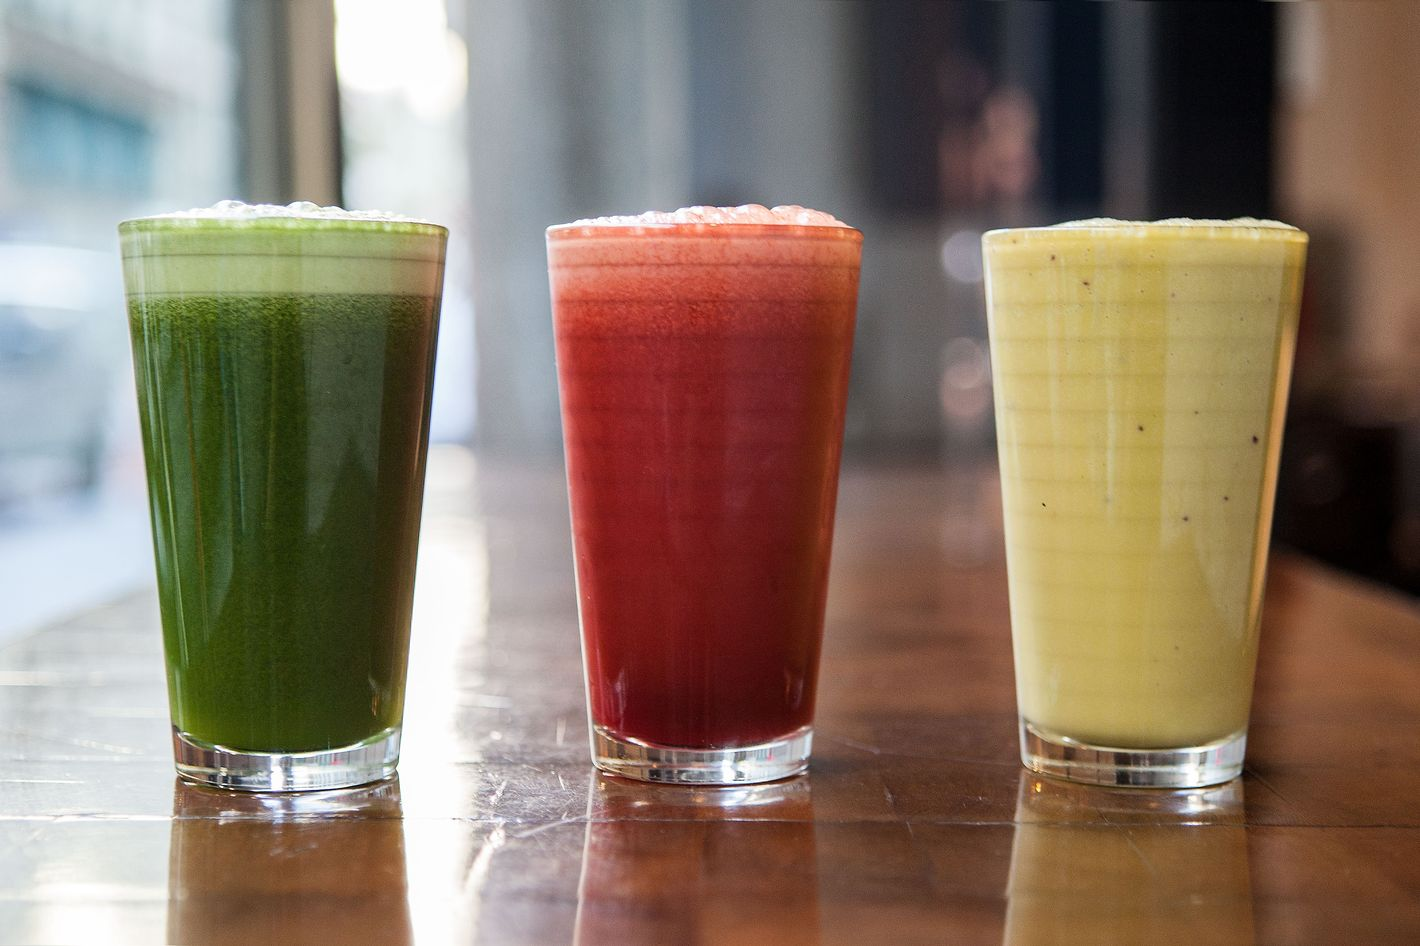 New juices at City Bakery.